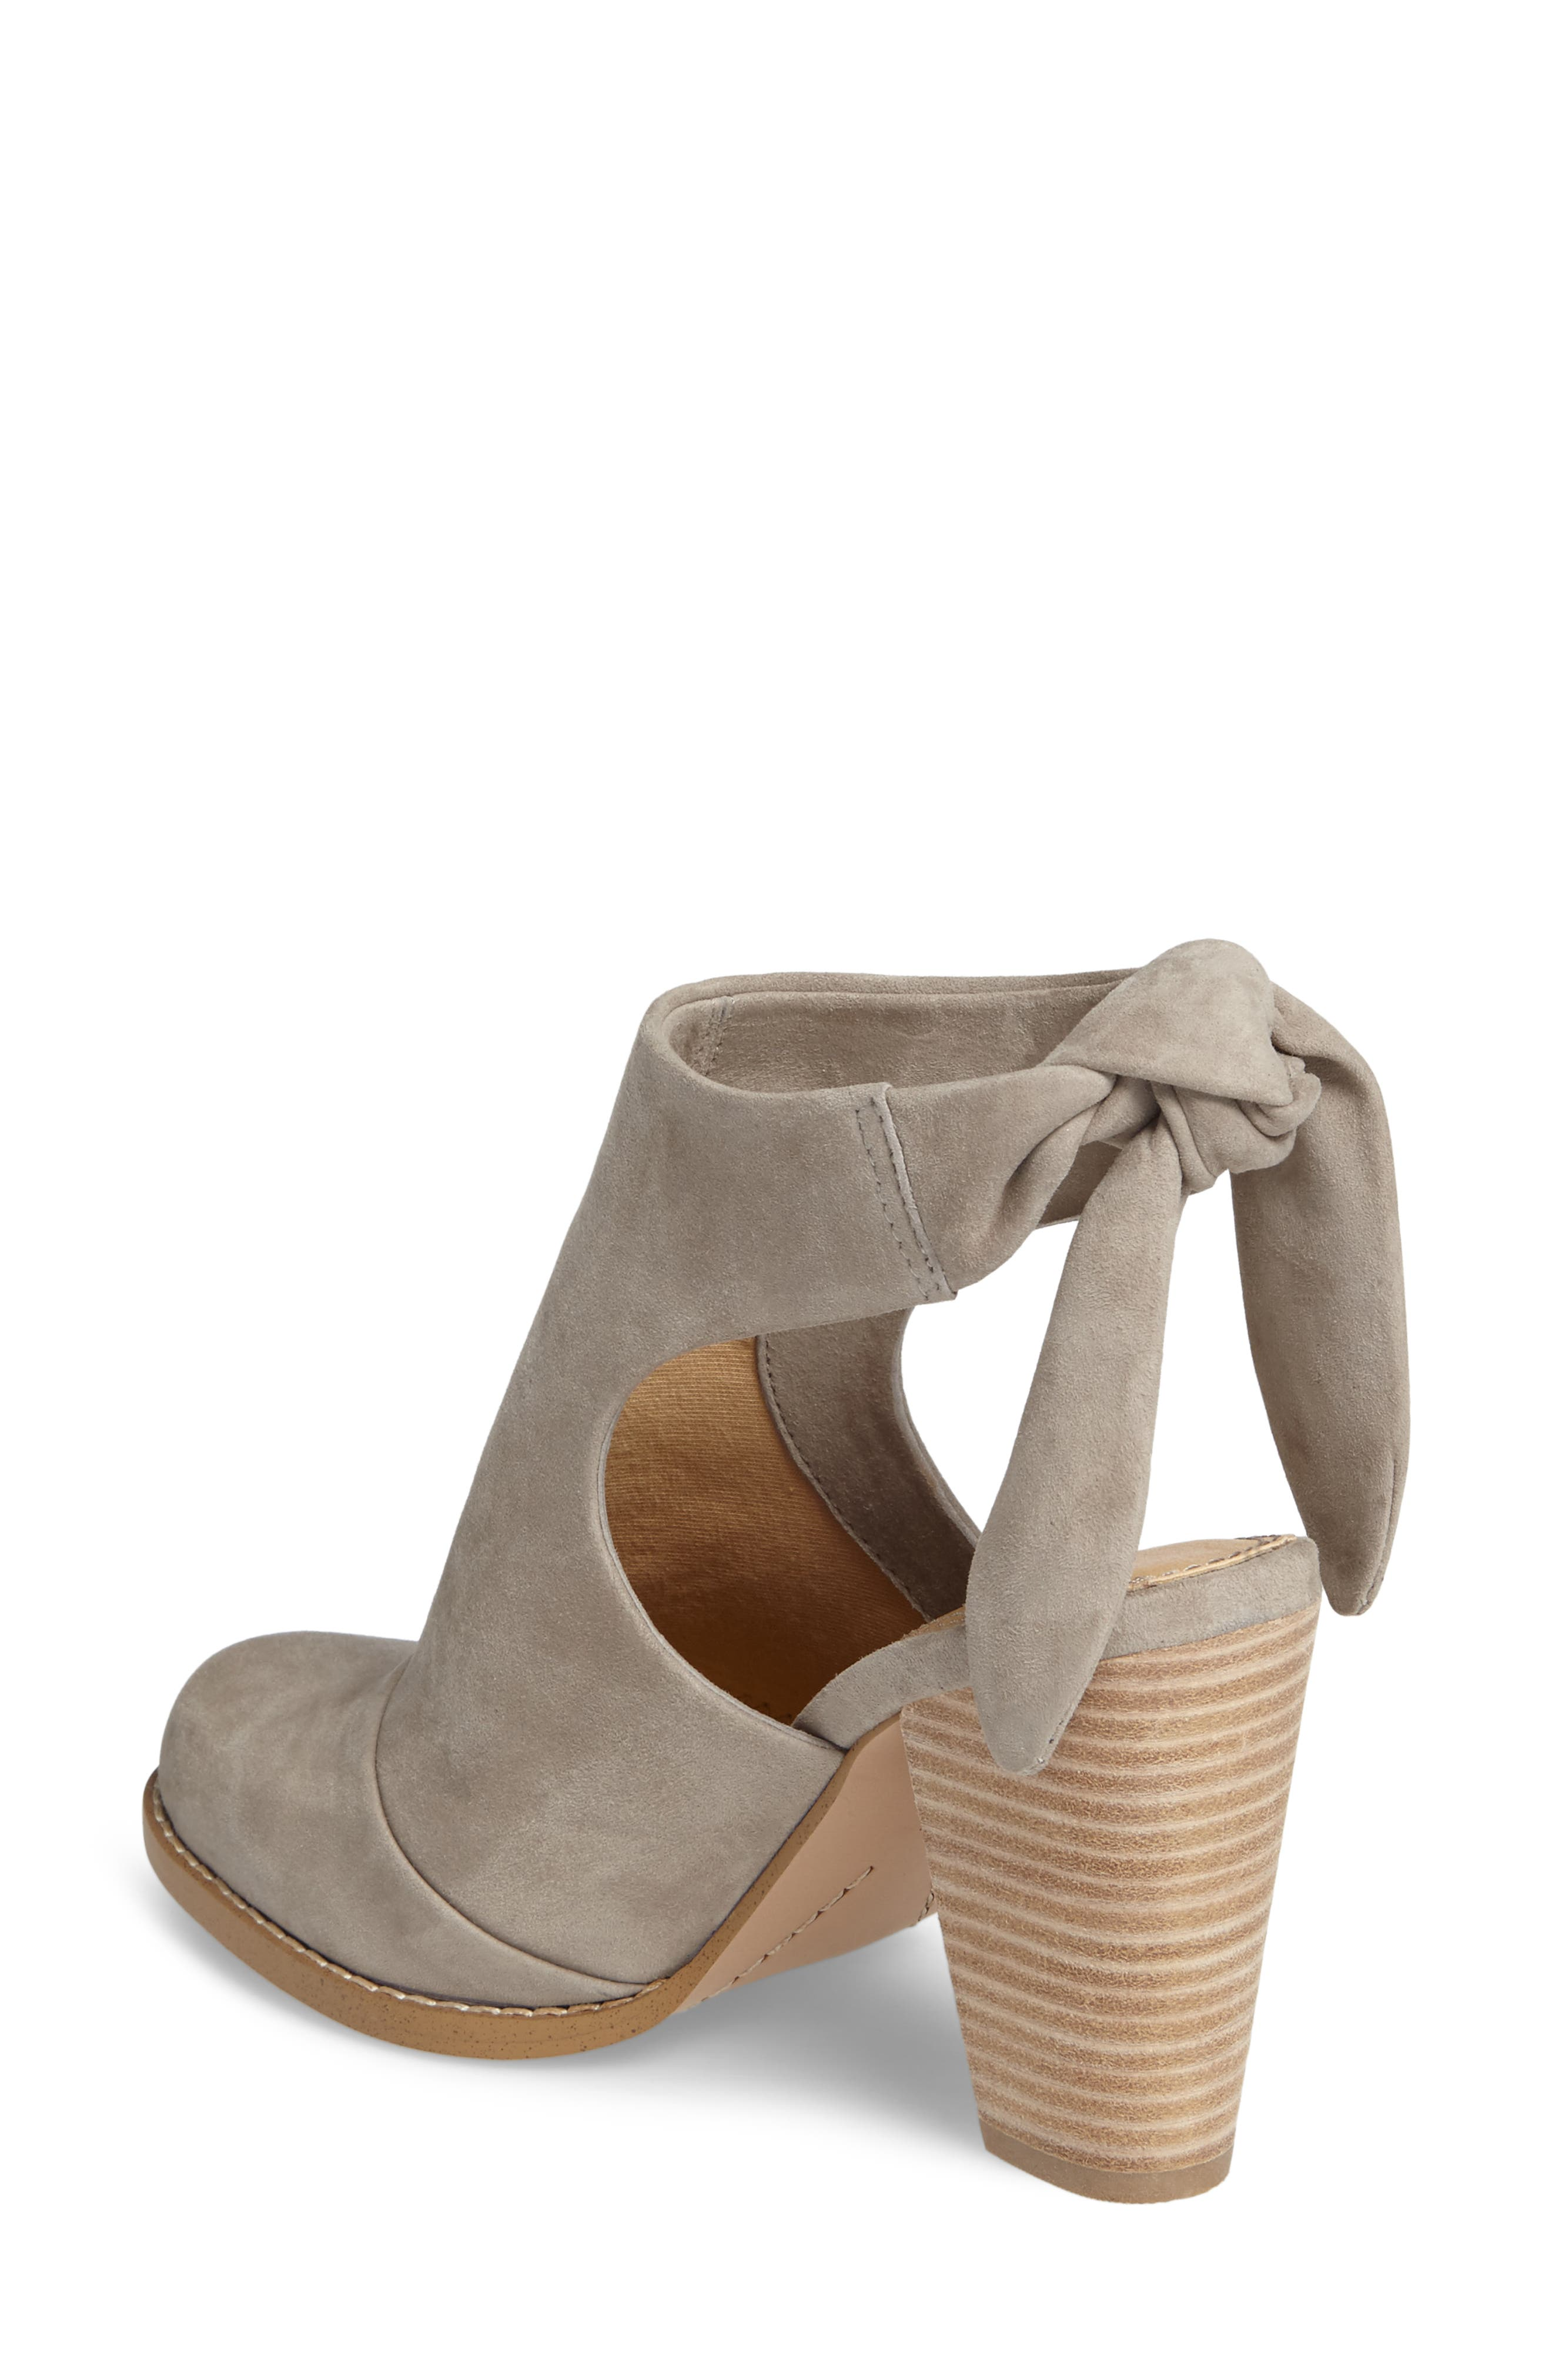 Danae Stacked Heel Bootie,                             Alternate thumbnail 3, color,                             Pearl Grey Suede